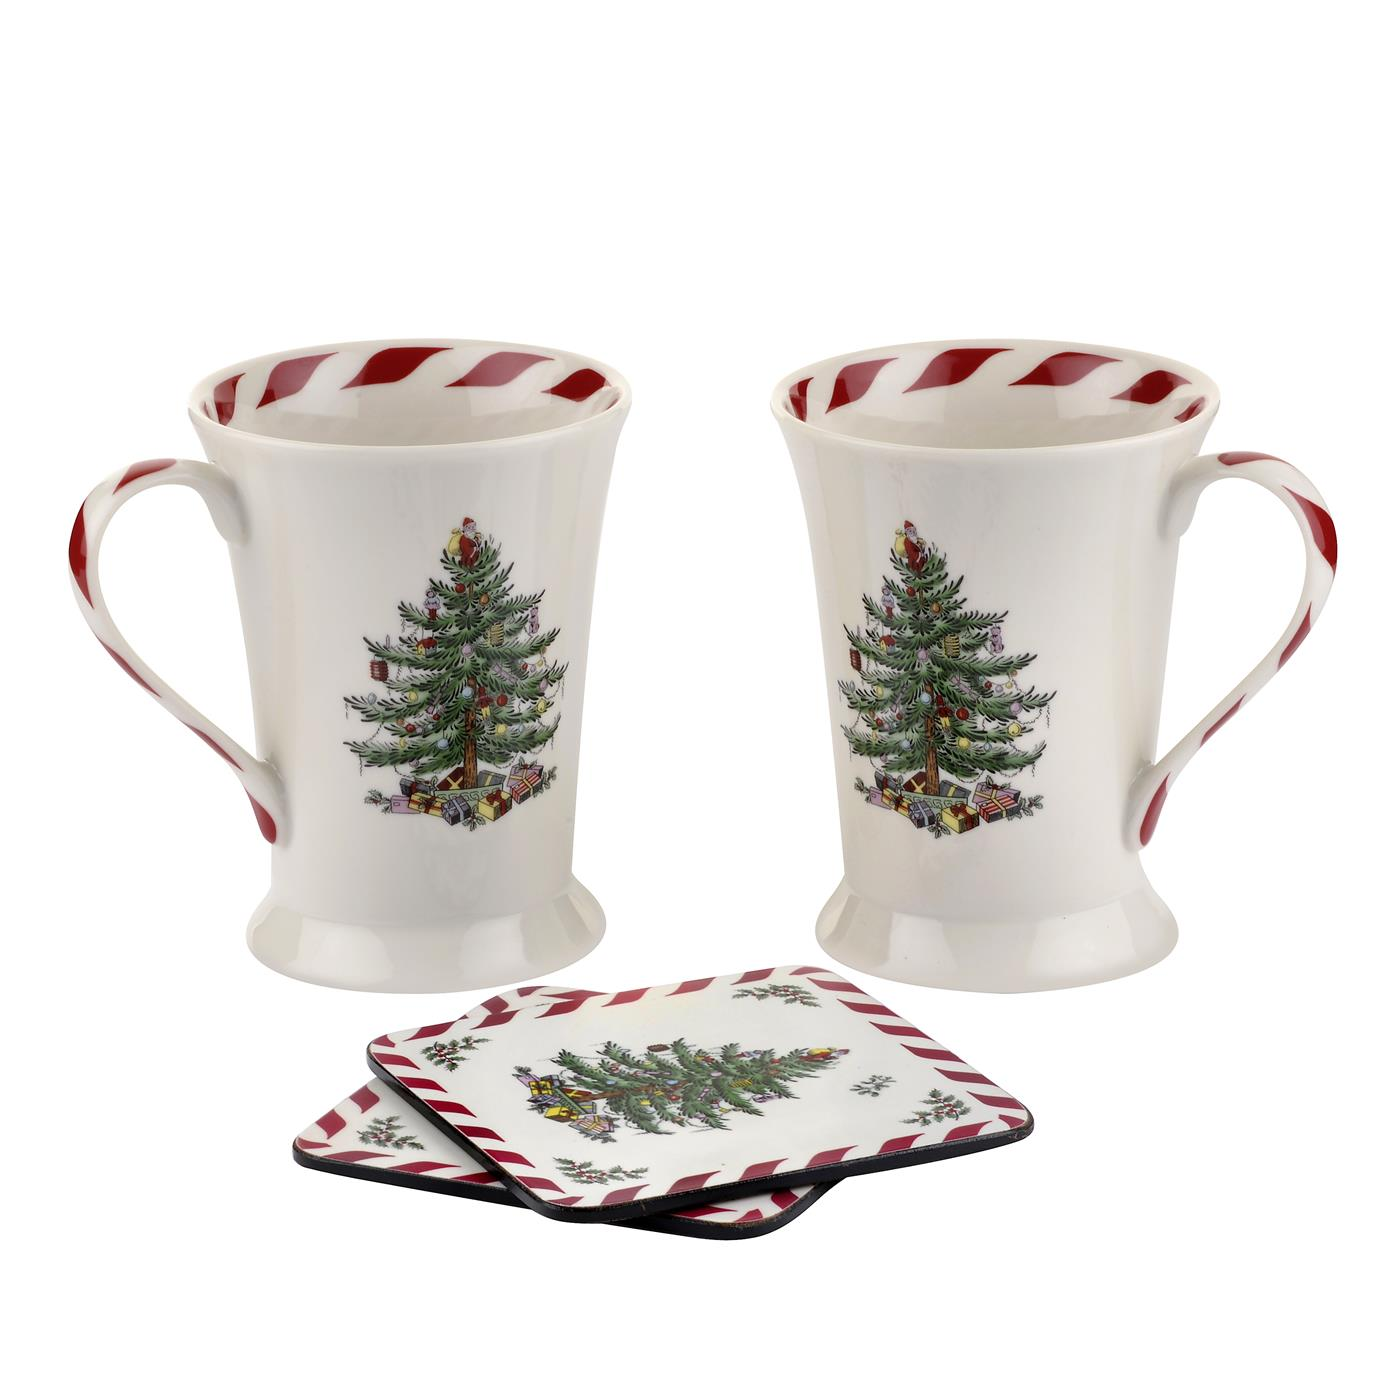 Pimpernel Christmas Tree Peppermint Set of 2 Mugs And Coasters image number 0